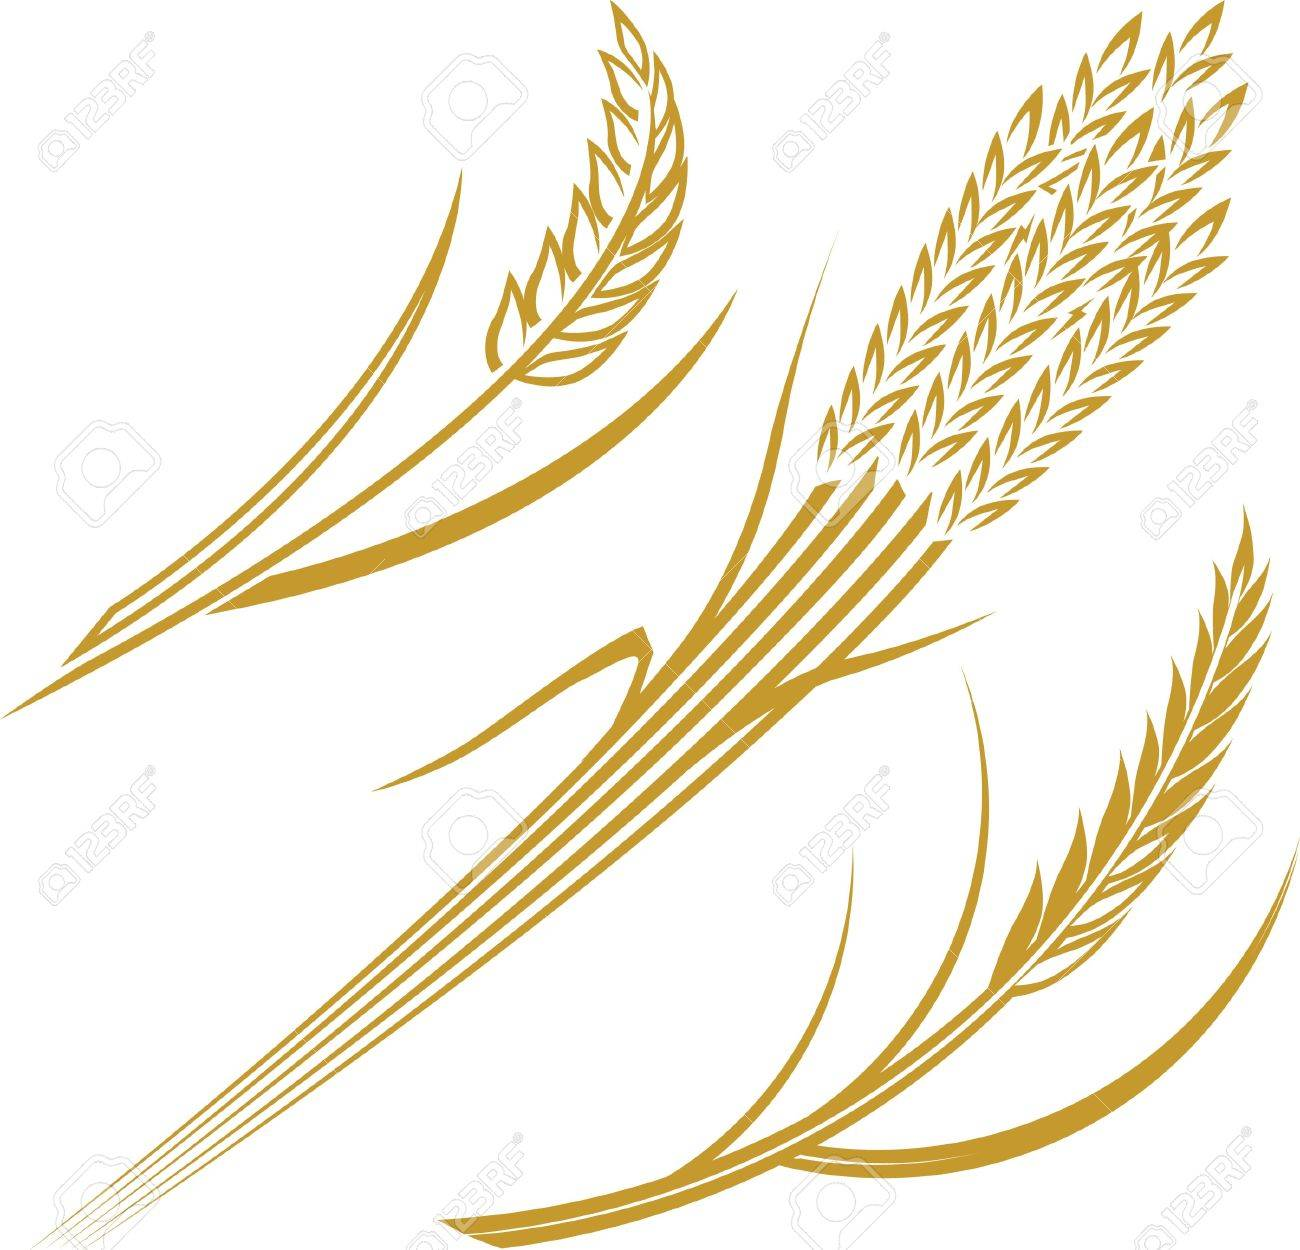 Wheat Icons Stock Vector - 17443060